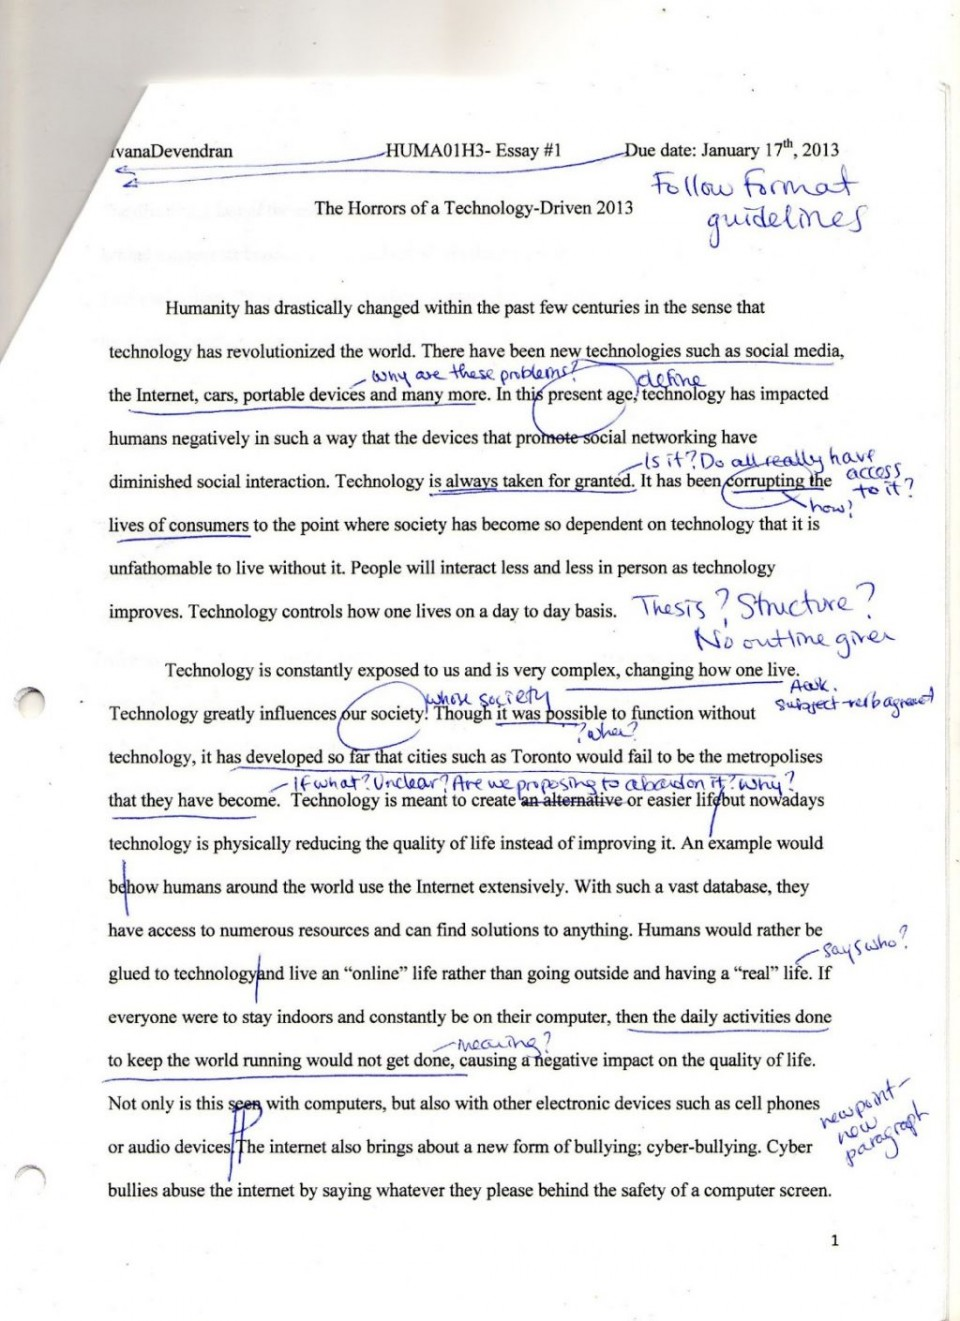 005 Essay Topics Music Img008 What Should You Avoid In Writingearch Paper Humanities Appreciation Questions Classical History Persuasive20 1024x1410 Persuasive About Awful Research Writing 960